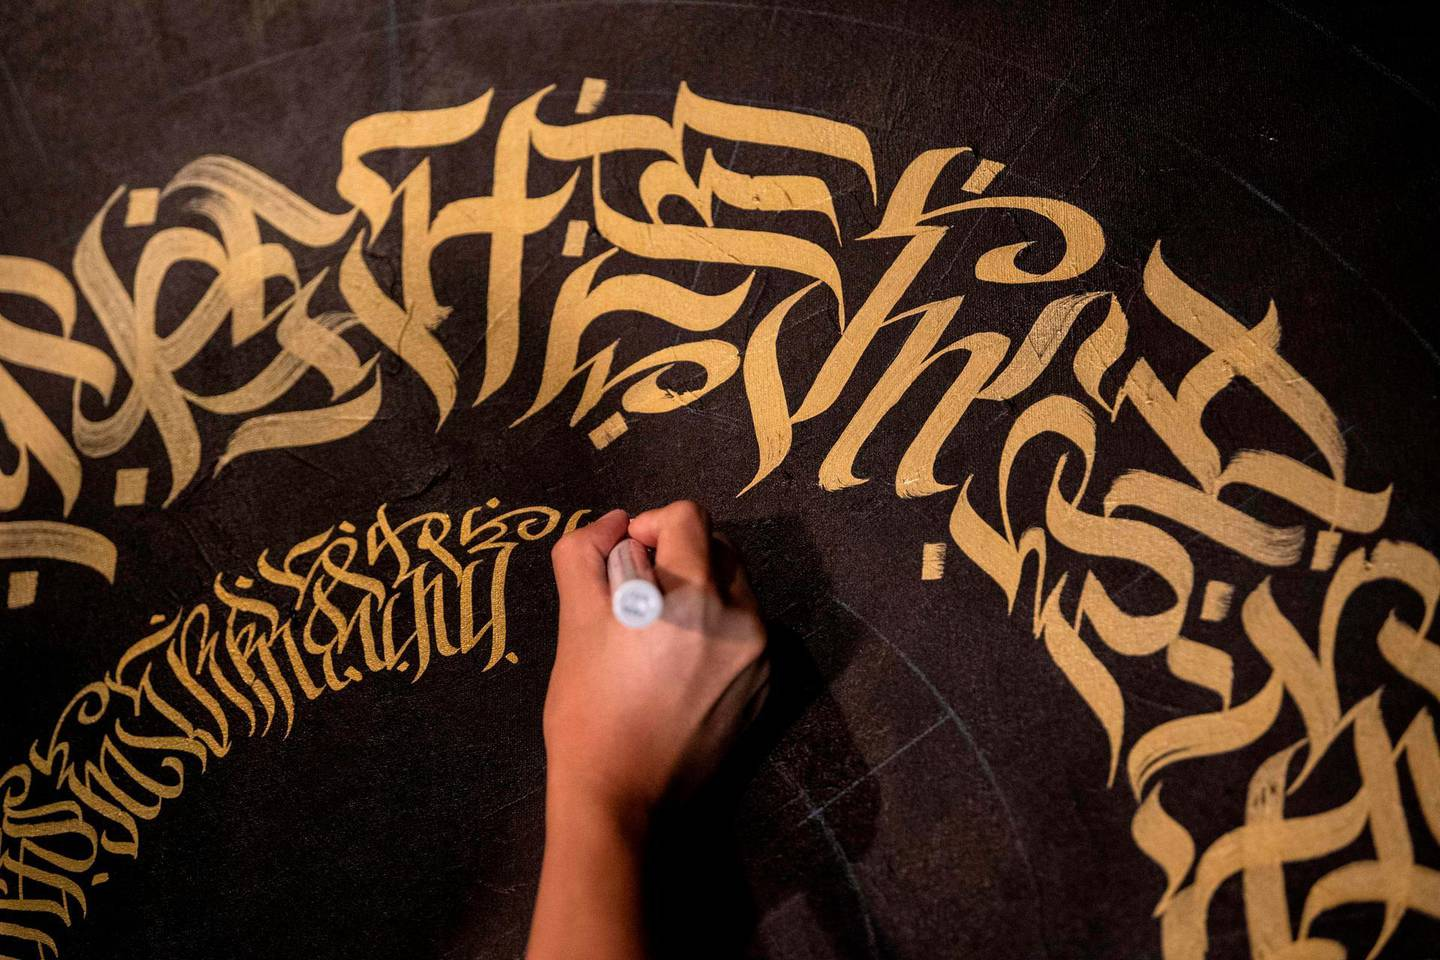 This photo taken on June 22, 2019 shows artist Taipan Lucero doing calligraphy using the indigenous scriptknown as Baybayin, used before Spanish colonisation in 1521, at an event in Manila. From tattoos, shirts, and artworks to a computer font and mobile apps, Baybayin found a rebirth among millennials and professionals learning its 17 characters beyond the marginal mention in history class.   - TO GO WITH AFP STORY: Philippines-culture-language, FEATURE by Ayee MACARAIG  / AFP / Noel CELIS / TO GO WITH AFP STORY: Philippines-culture-language, FEATURE by Ayee MACARAIG